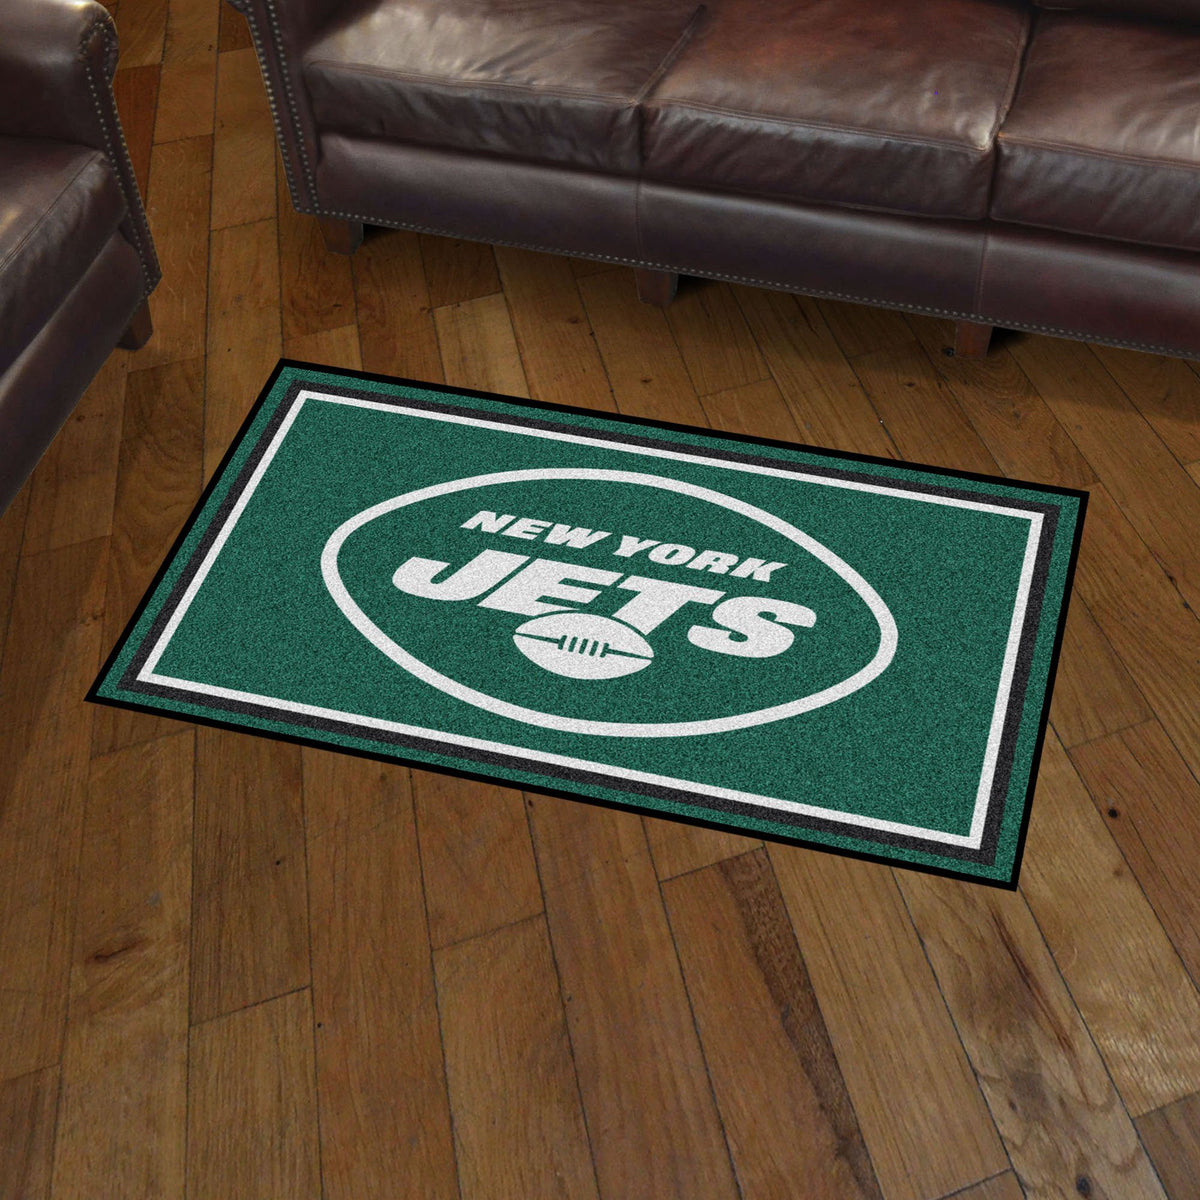 NFL - 3' x 5' Rug NFL Mats, Plush Rugs, 3x5 Rug, NFL, Home Fan Mats New York Jets